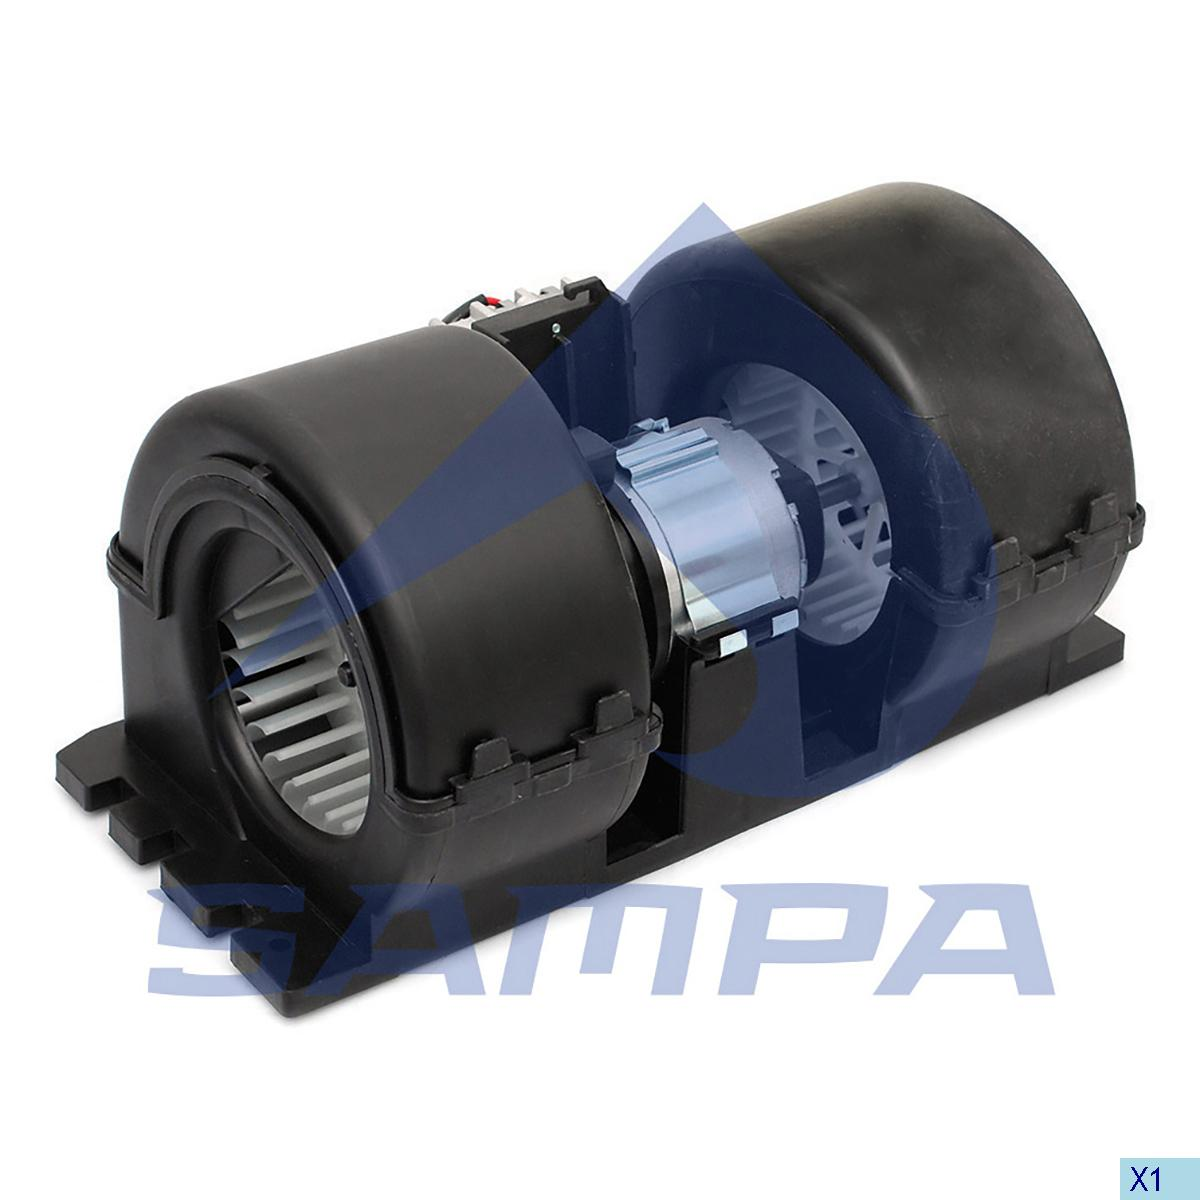 Fan Motor, Cab Heating & Ventilation, Man, Cab